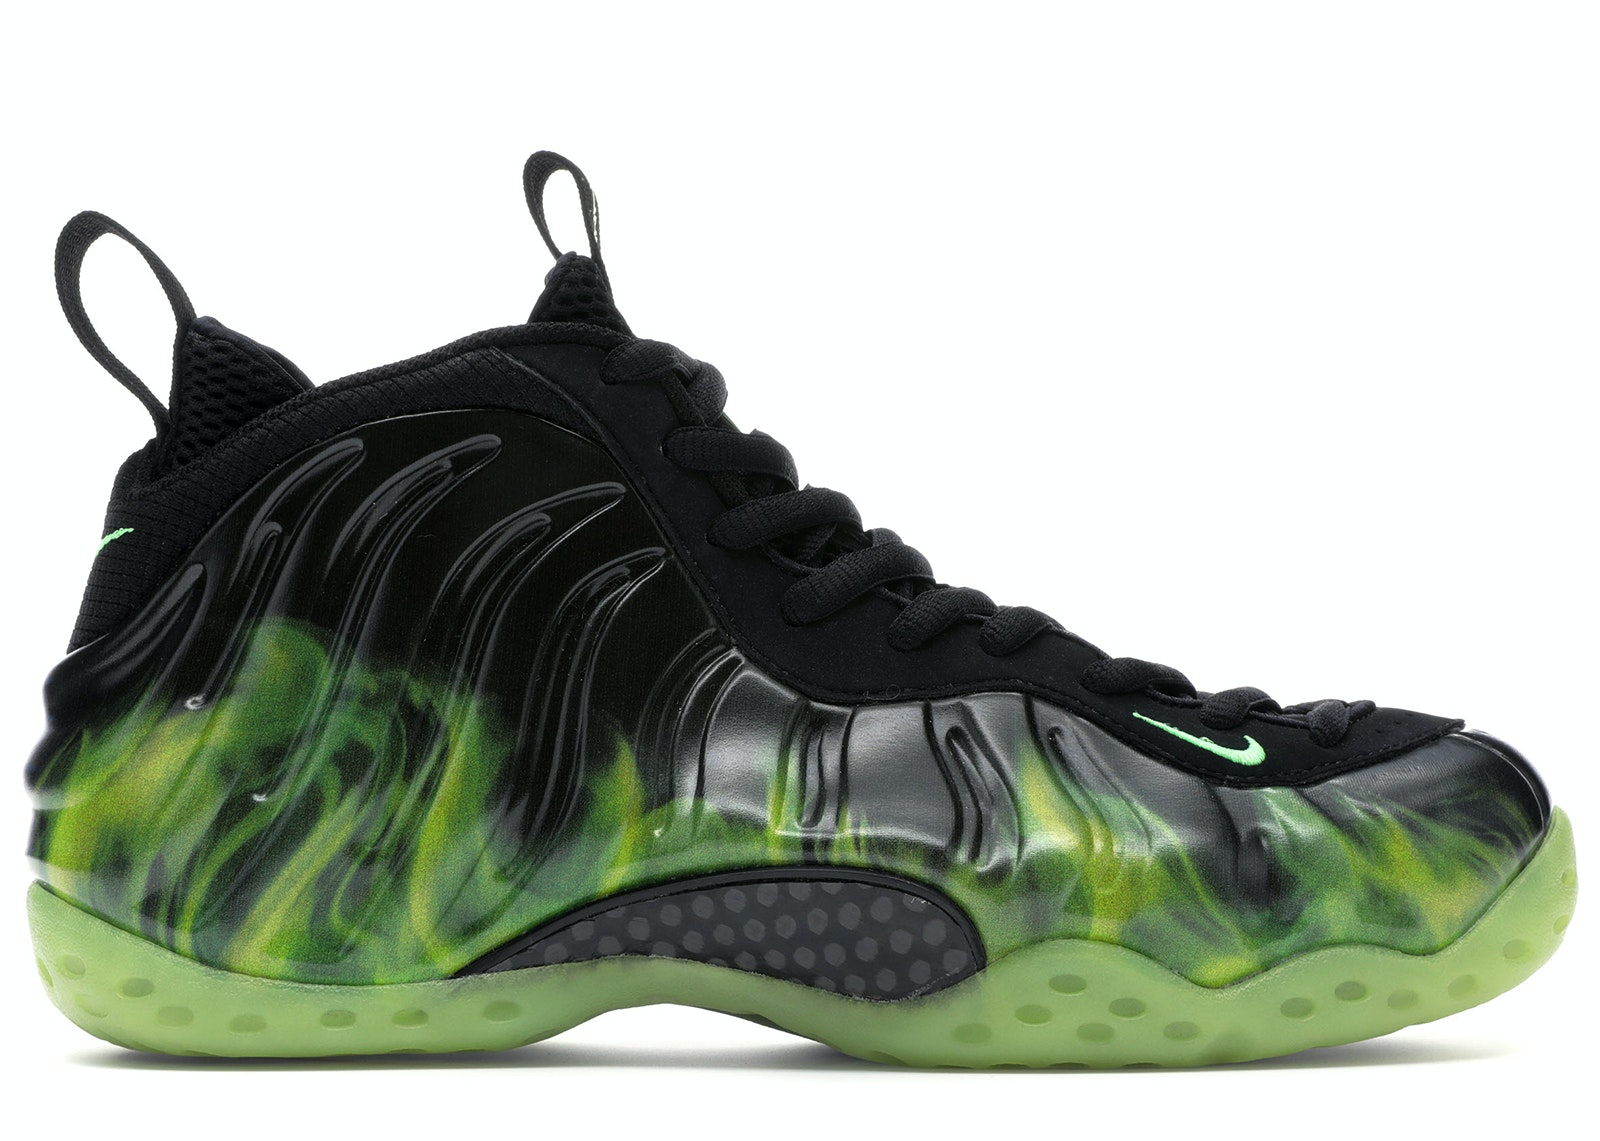 NBA 2K20 Shoe CreatorNike Foamposite One Chrome ...